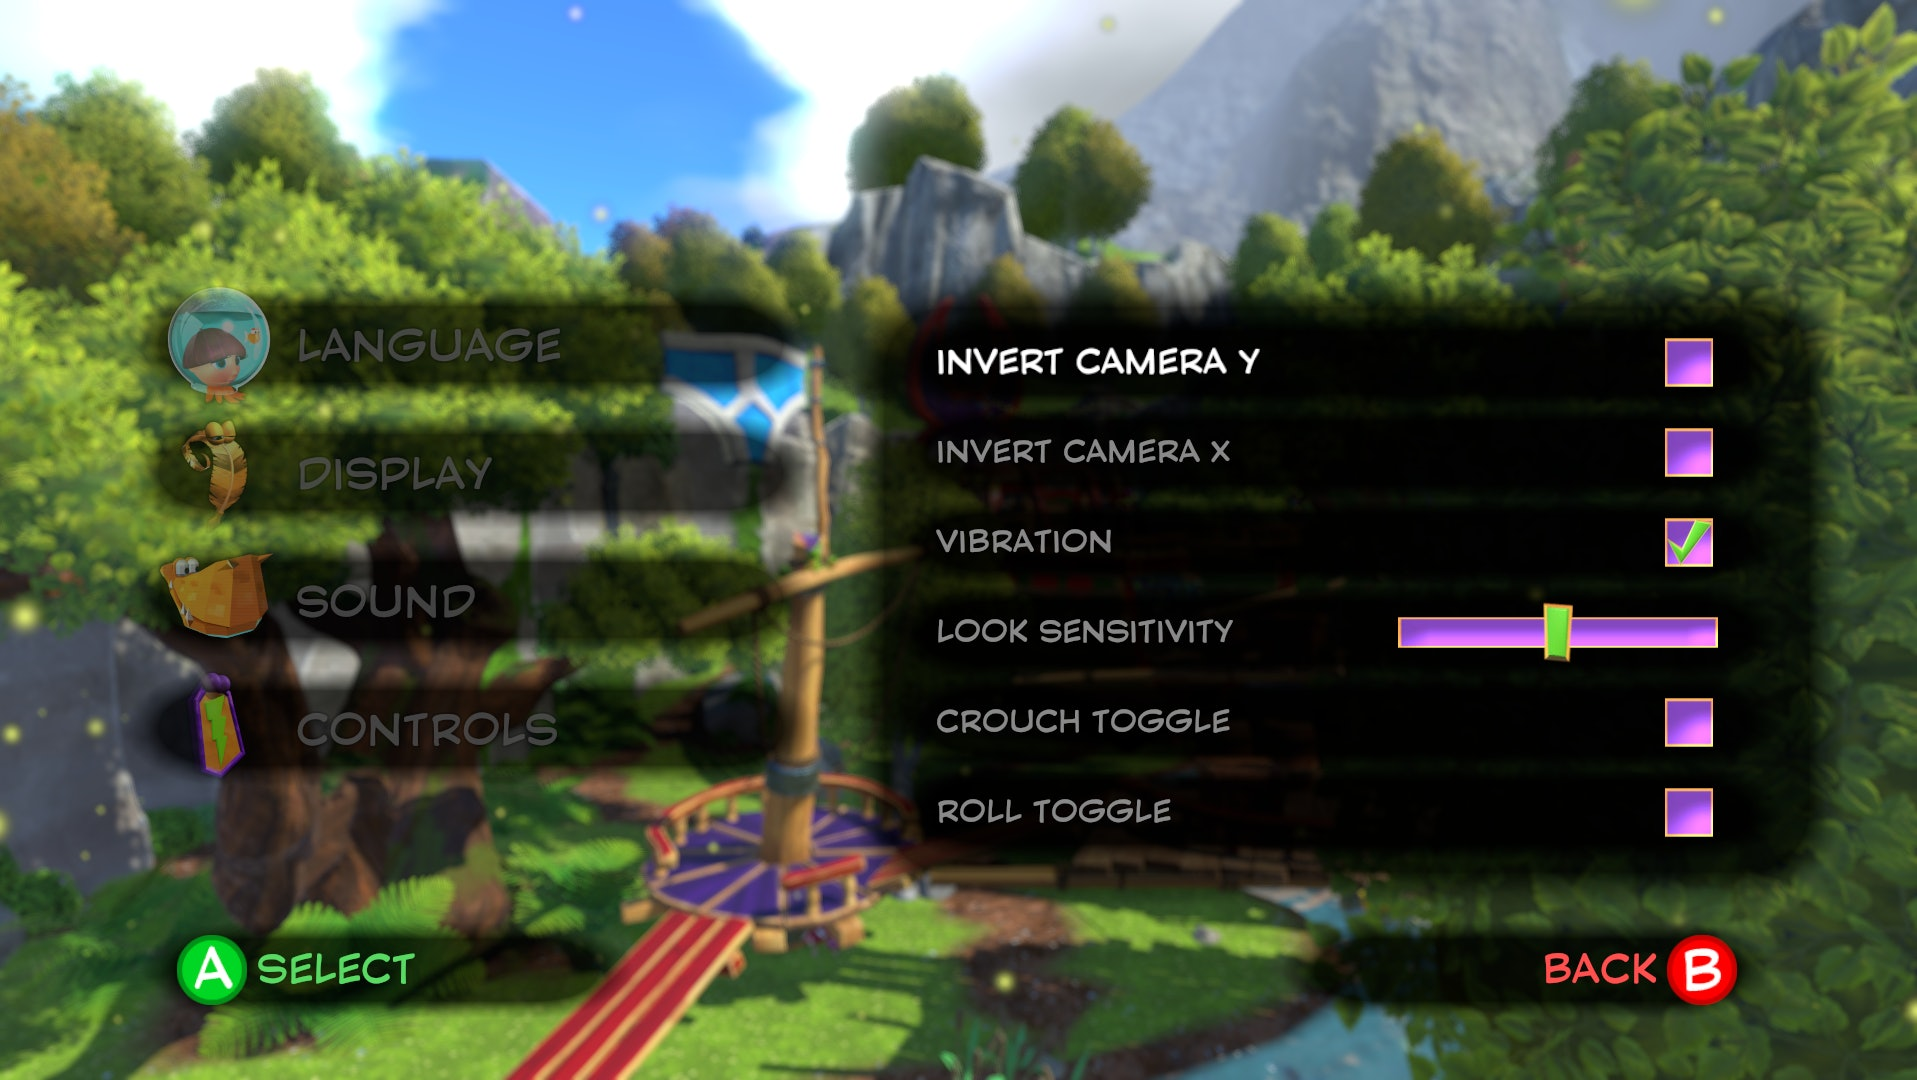 Yooka-Laylee' Keyboard Controls: How to play on PC without a